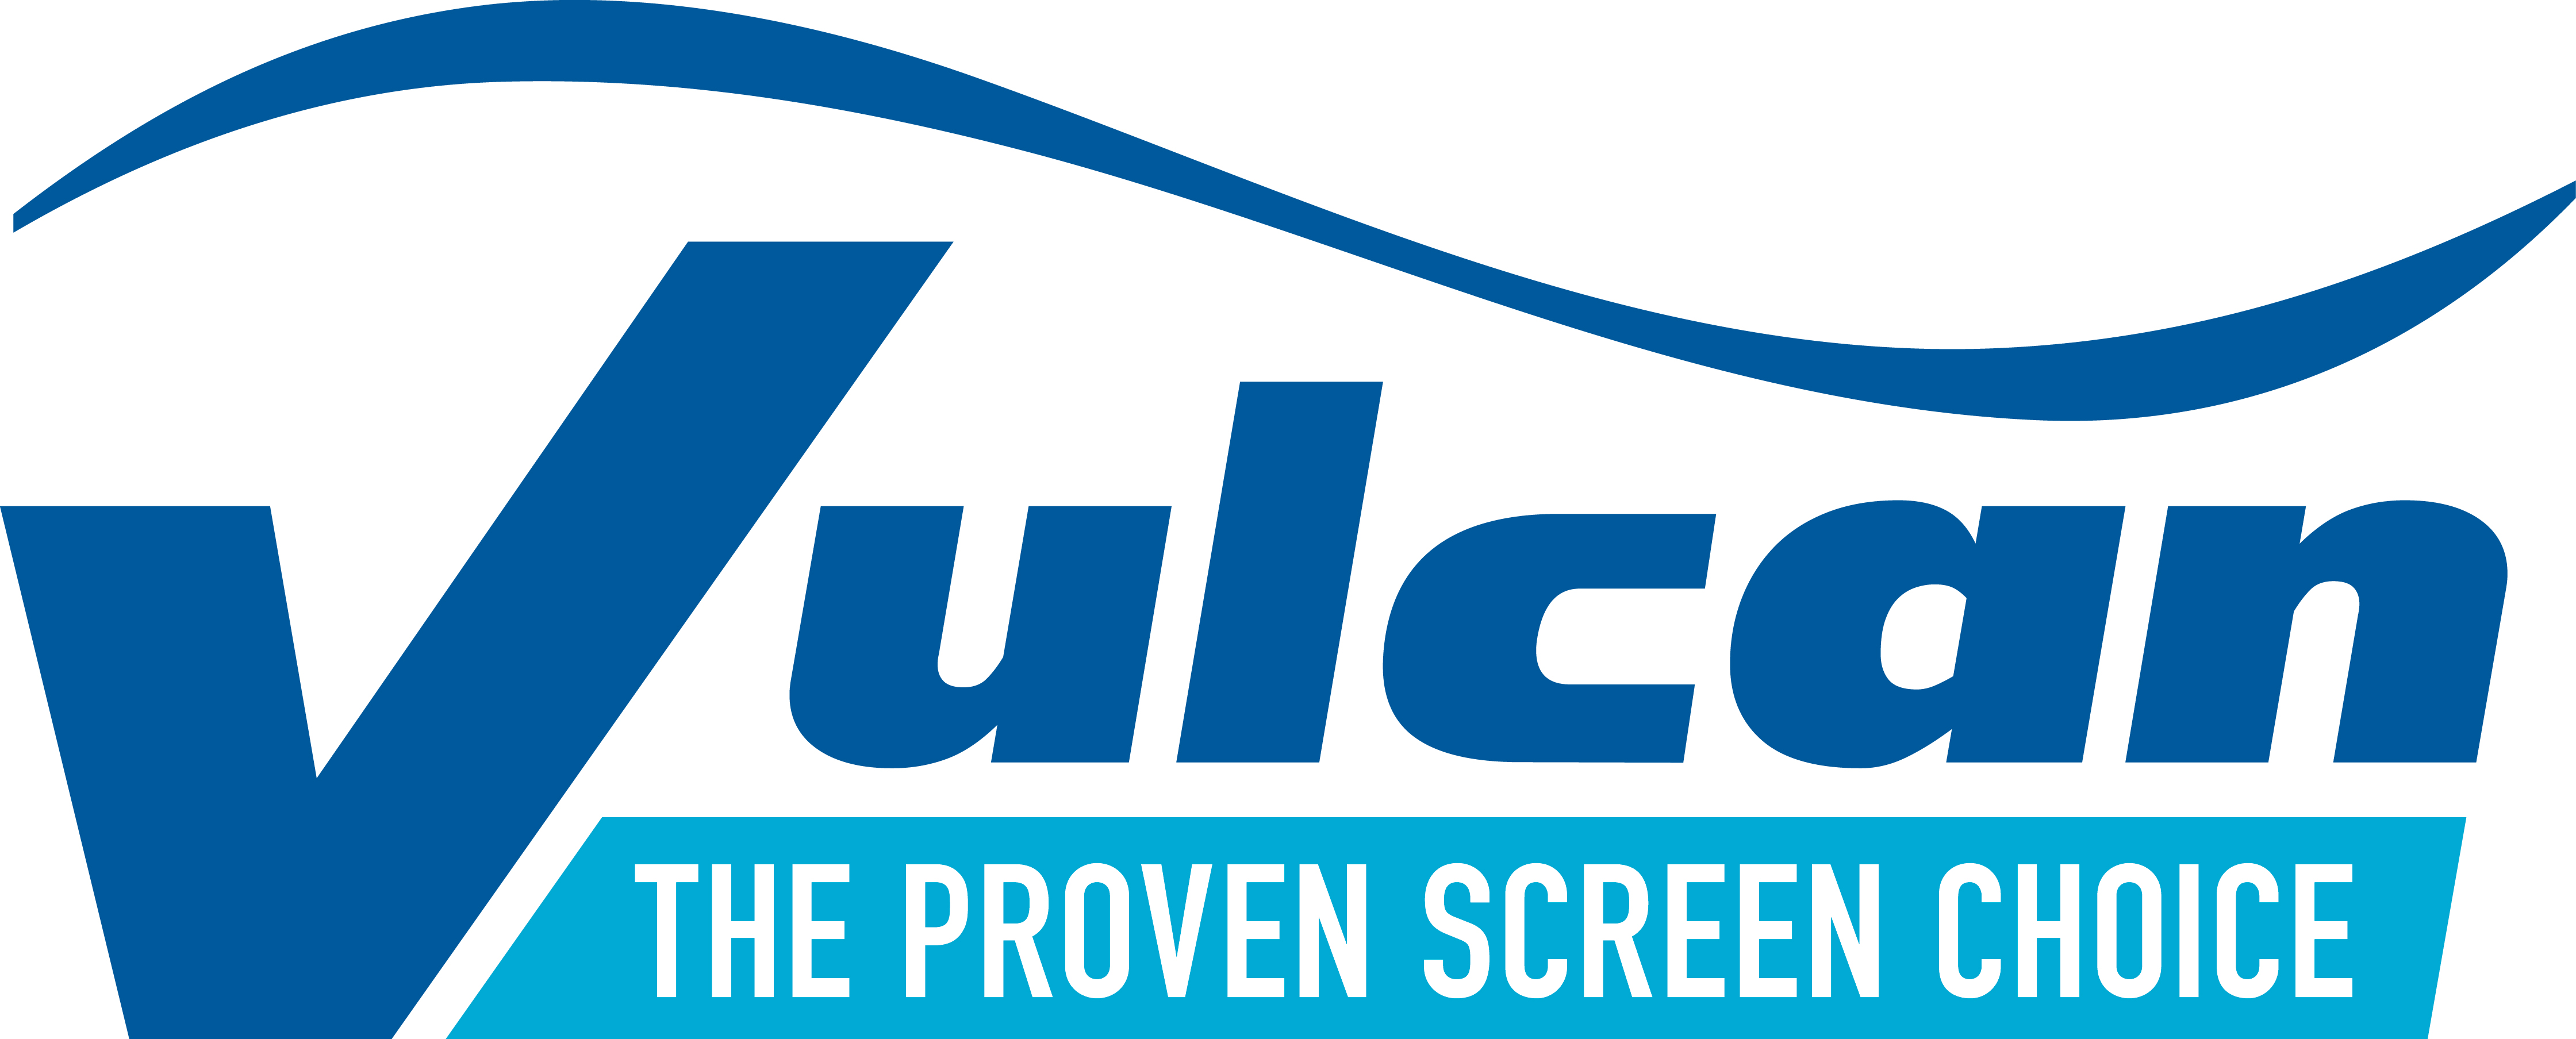 Vulcan Industries, Inc